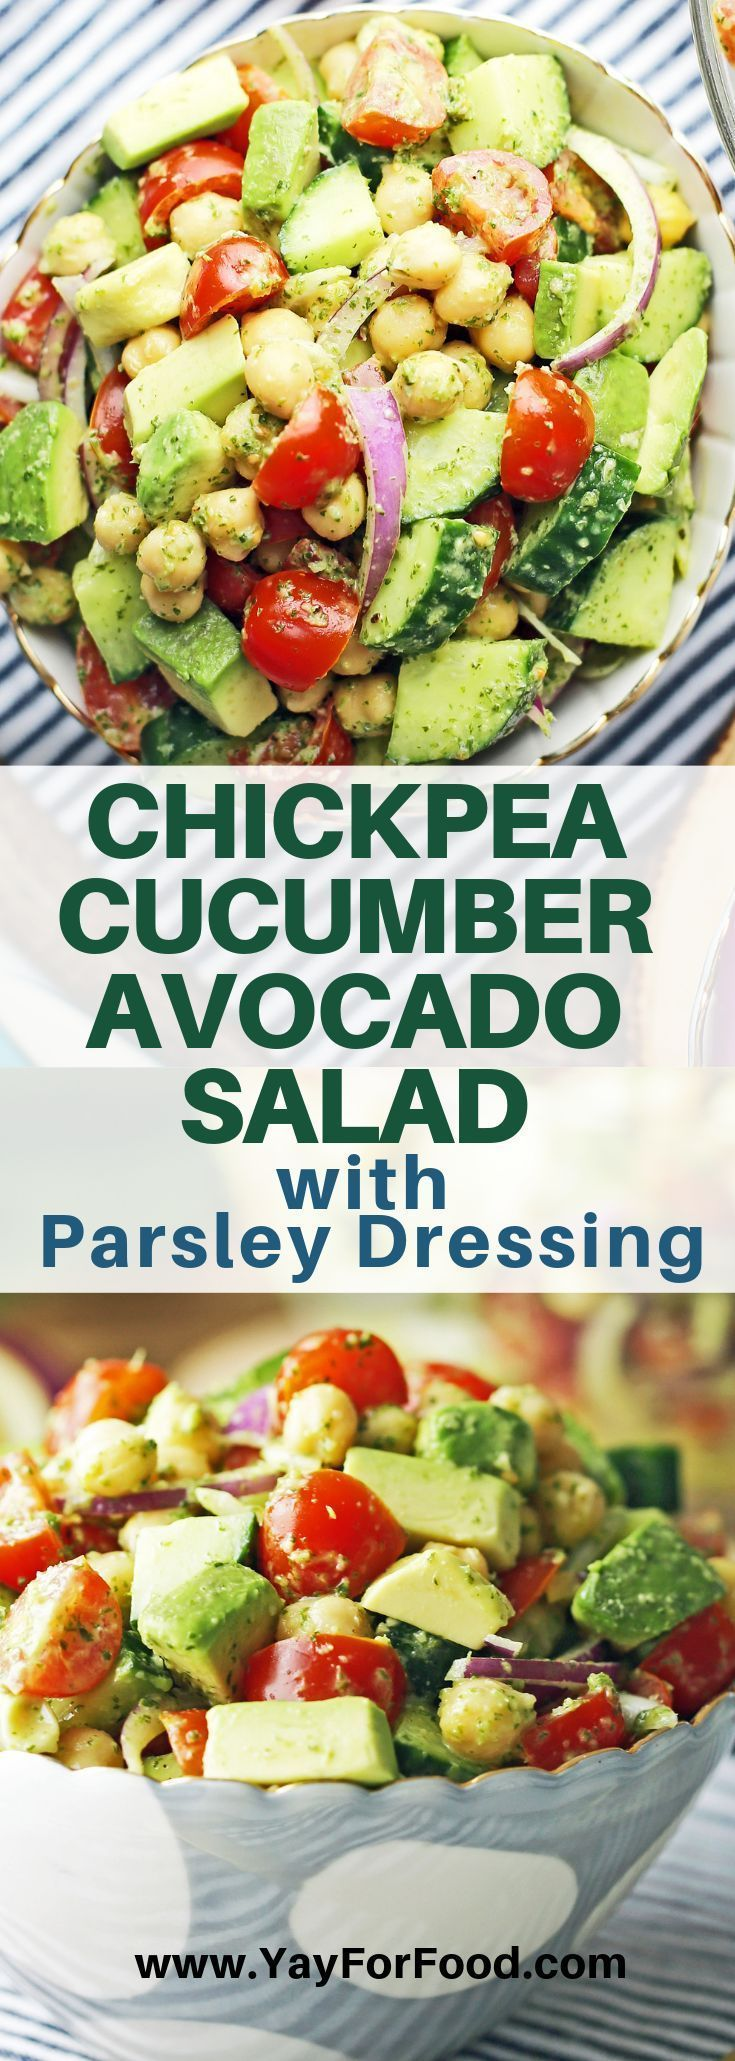 Chickpea Cucumber Avocado Salad with Parsley Dressing - Yay! For Food Chickpea Cucumber Avocado Sal